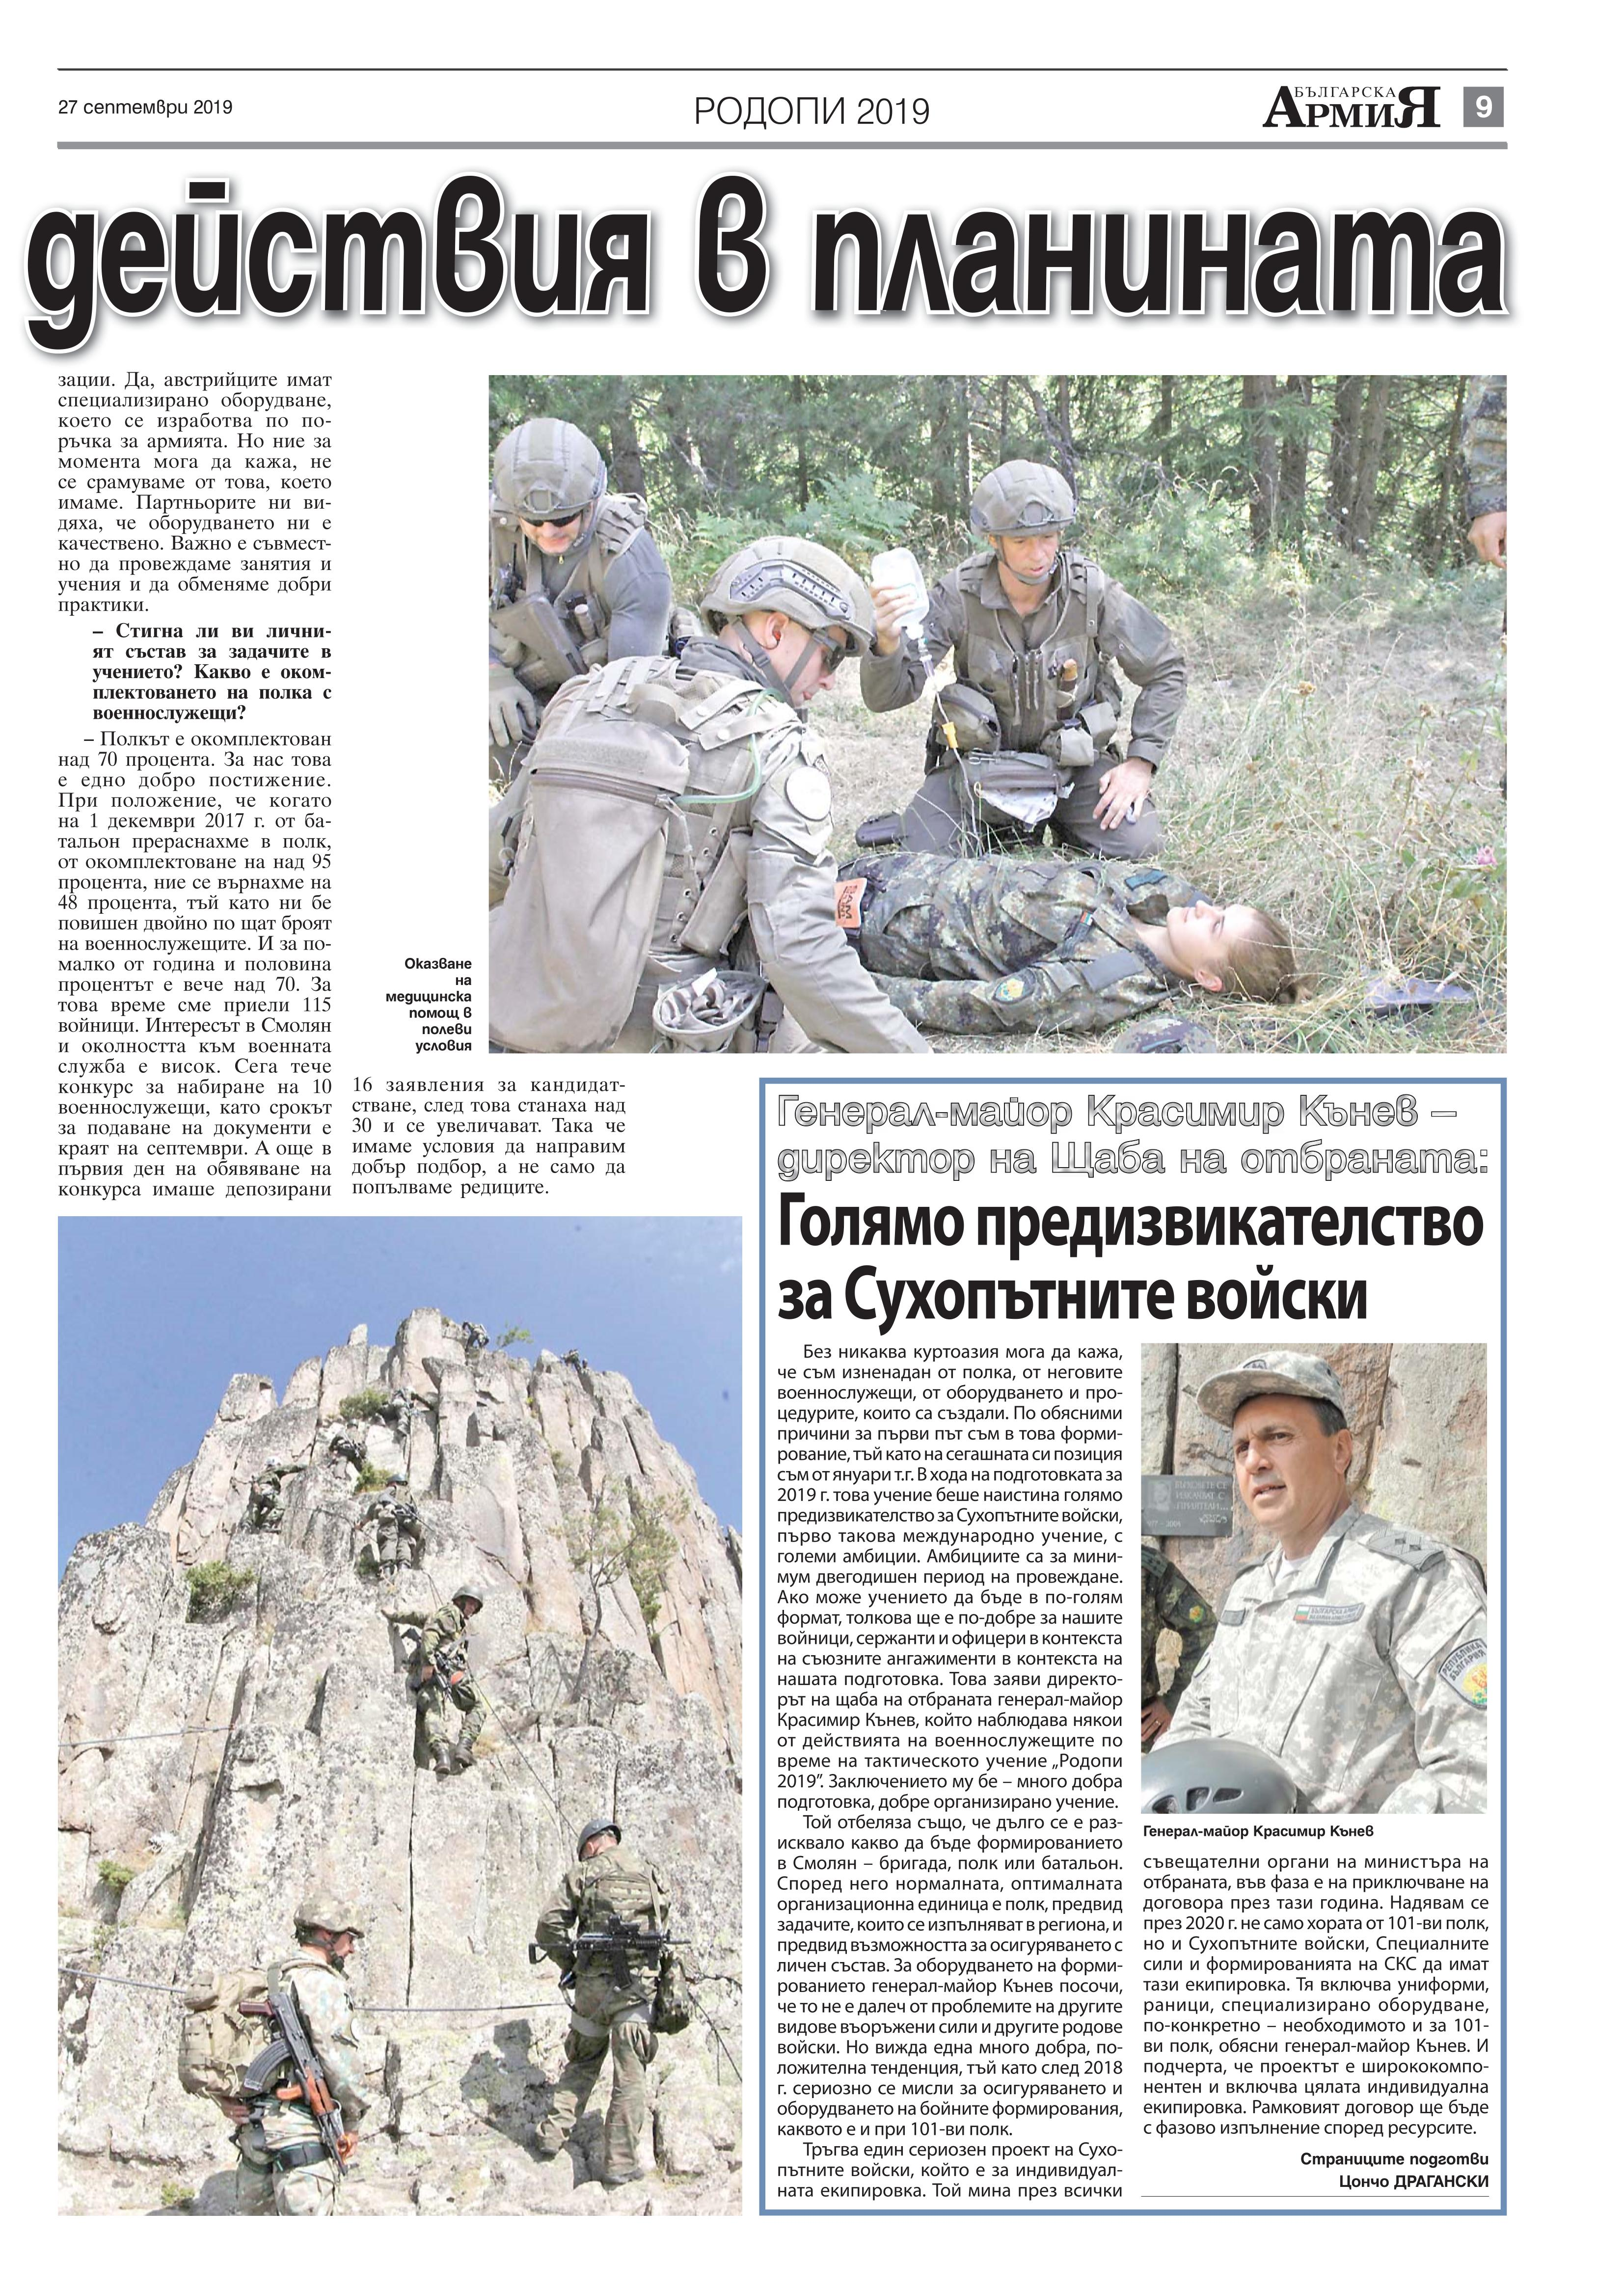 https://www.armymedia.bg/wp-content/uploads/2015/06/09.page1_-108.jpg